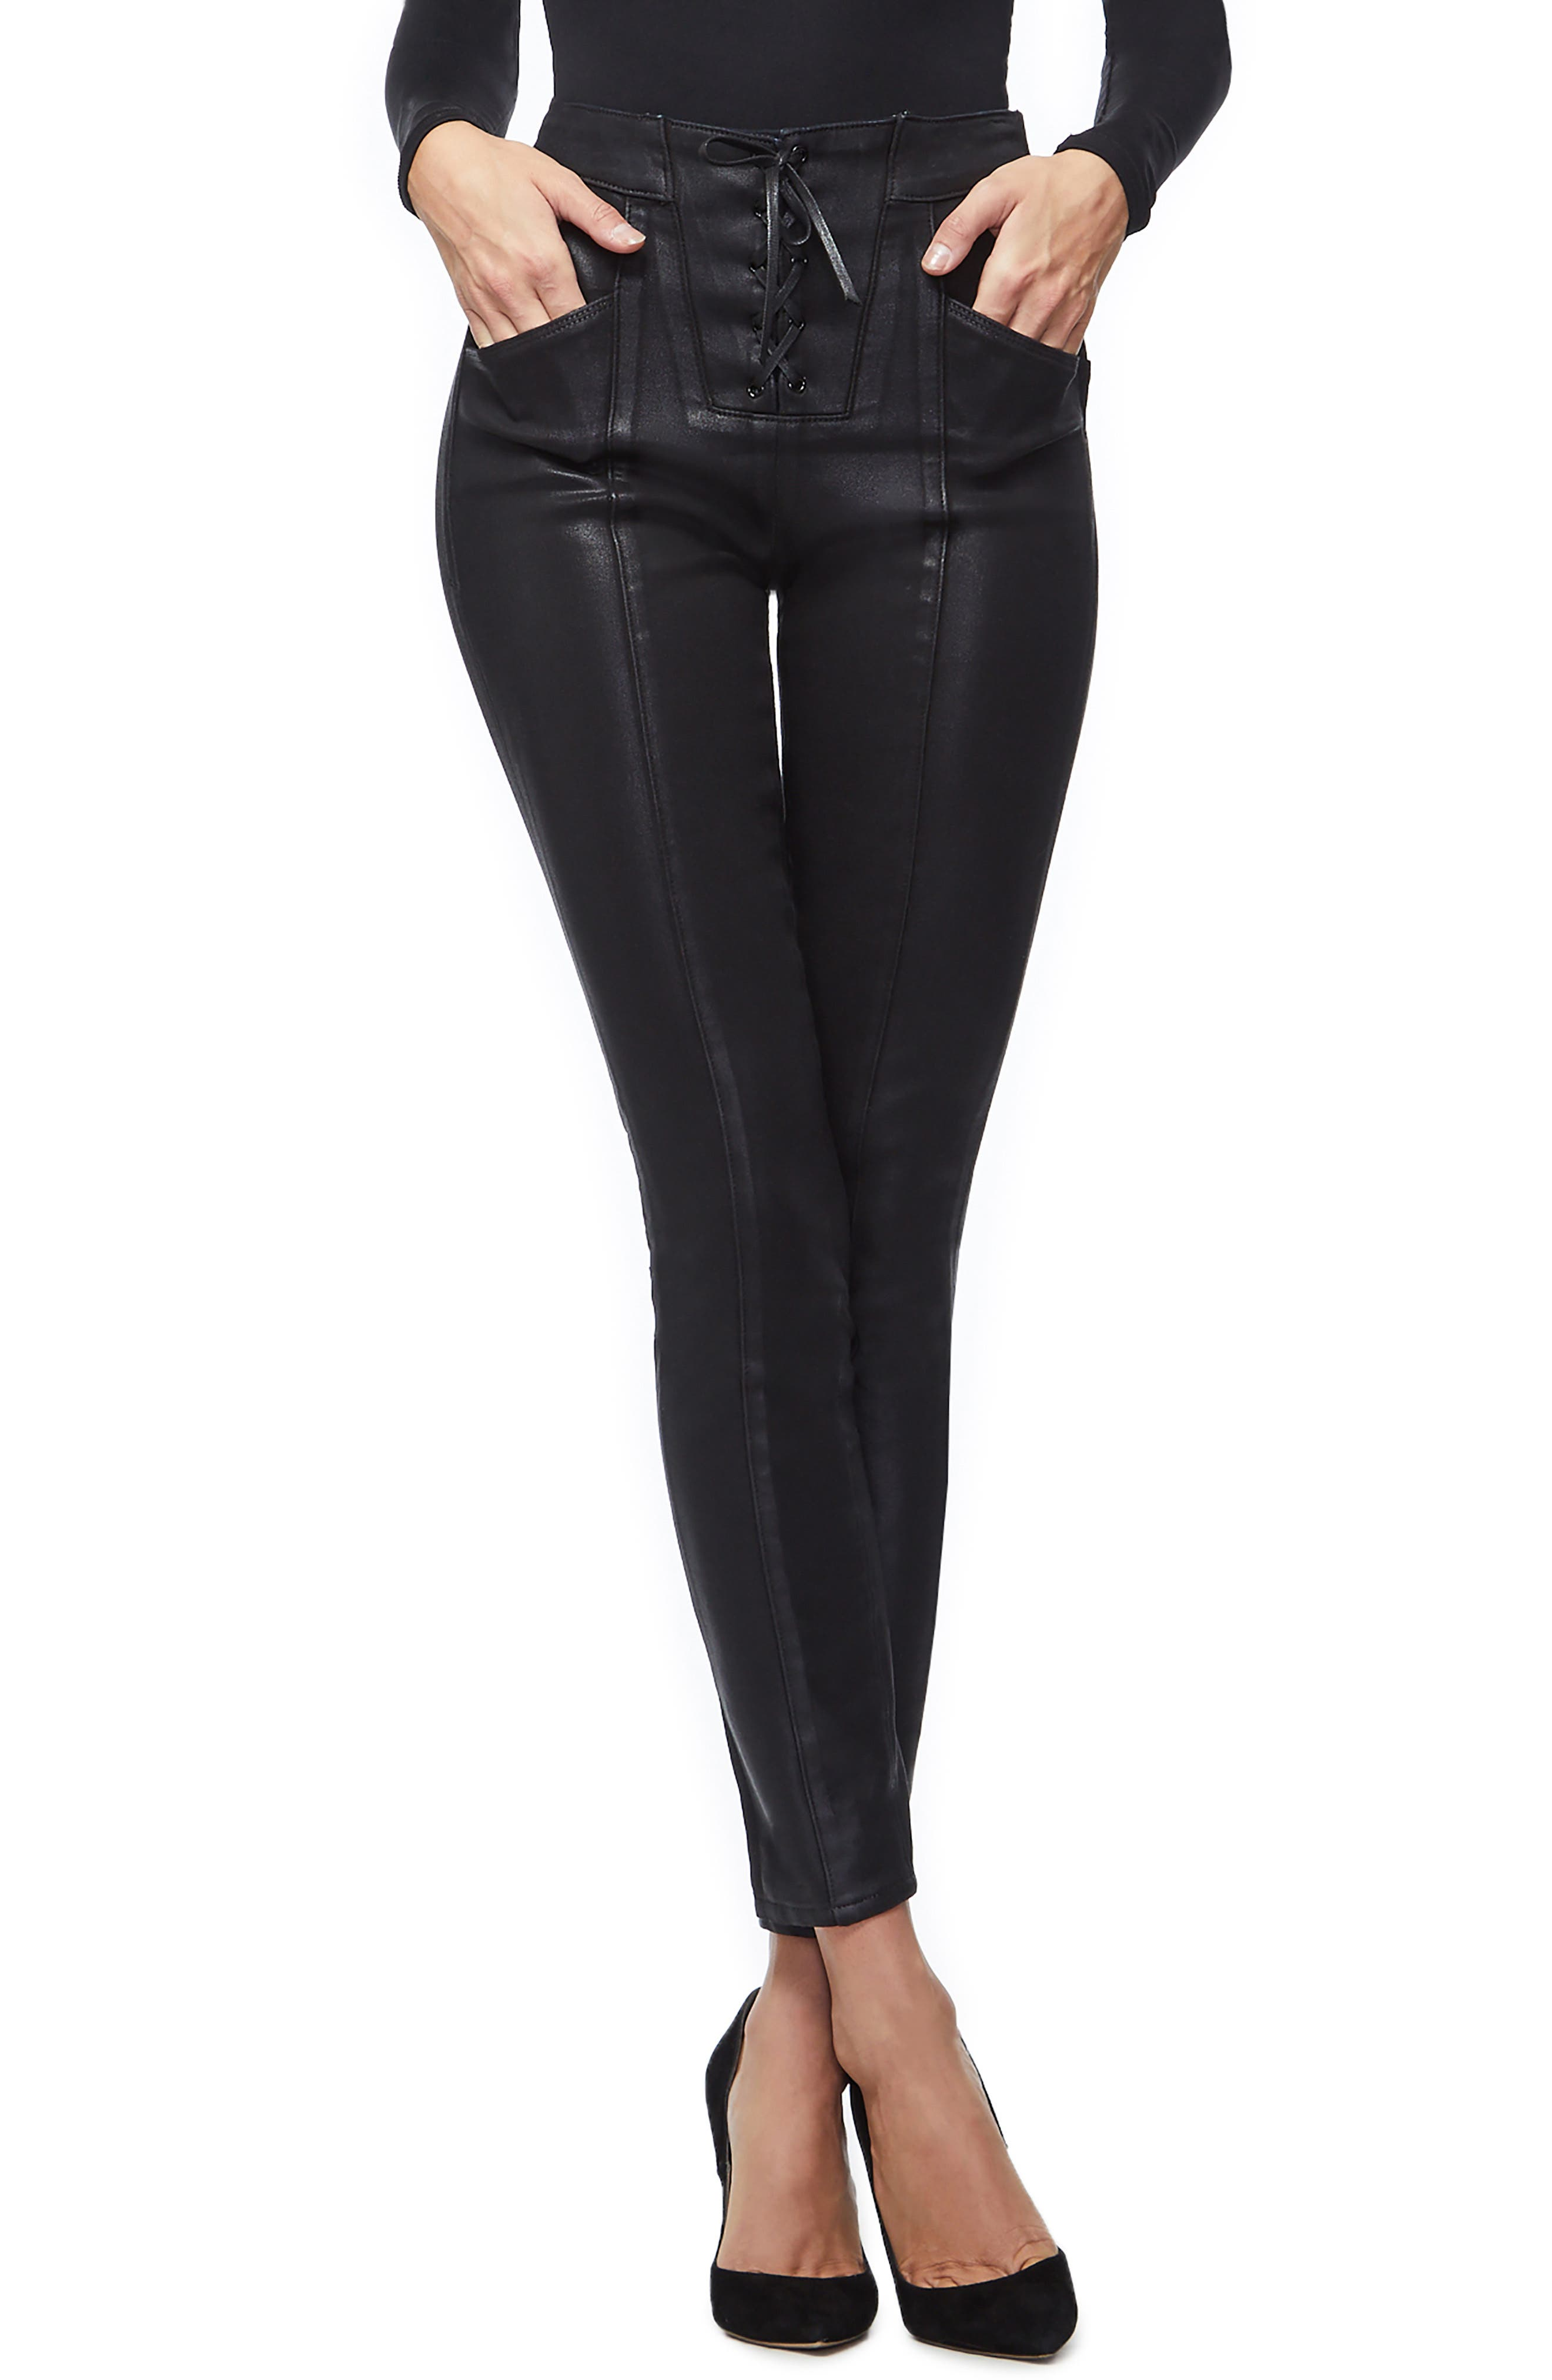 GOOD AMERICAN, Coated Lace-Up High Waist Skinny Jeans, Main thumbnail 1, color, BLACK034